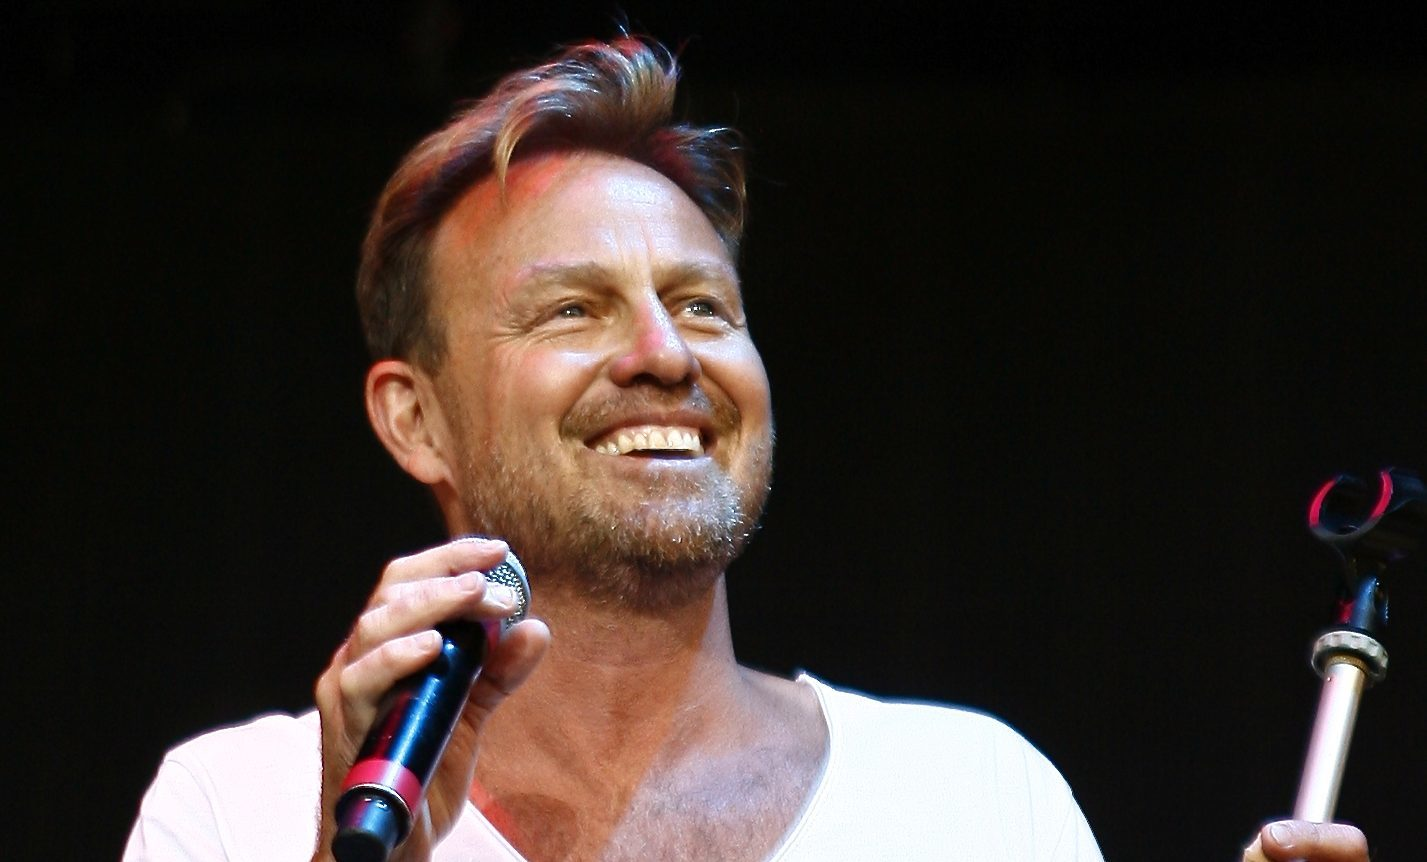 Jason Donovan performing on stage (Duncan Cowley)